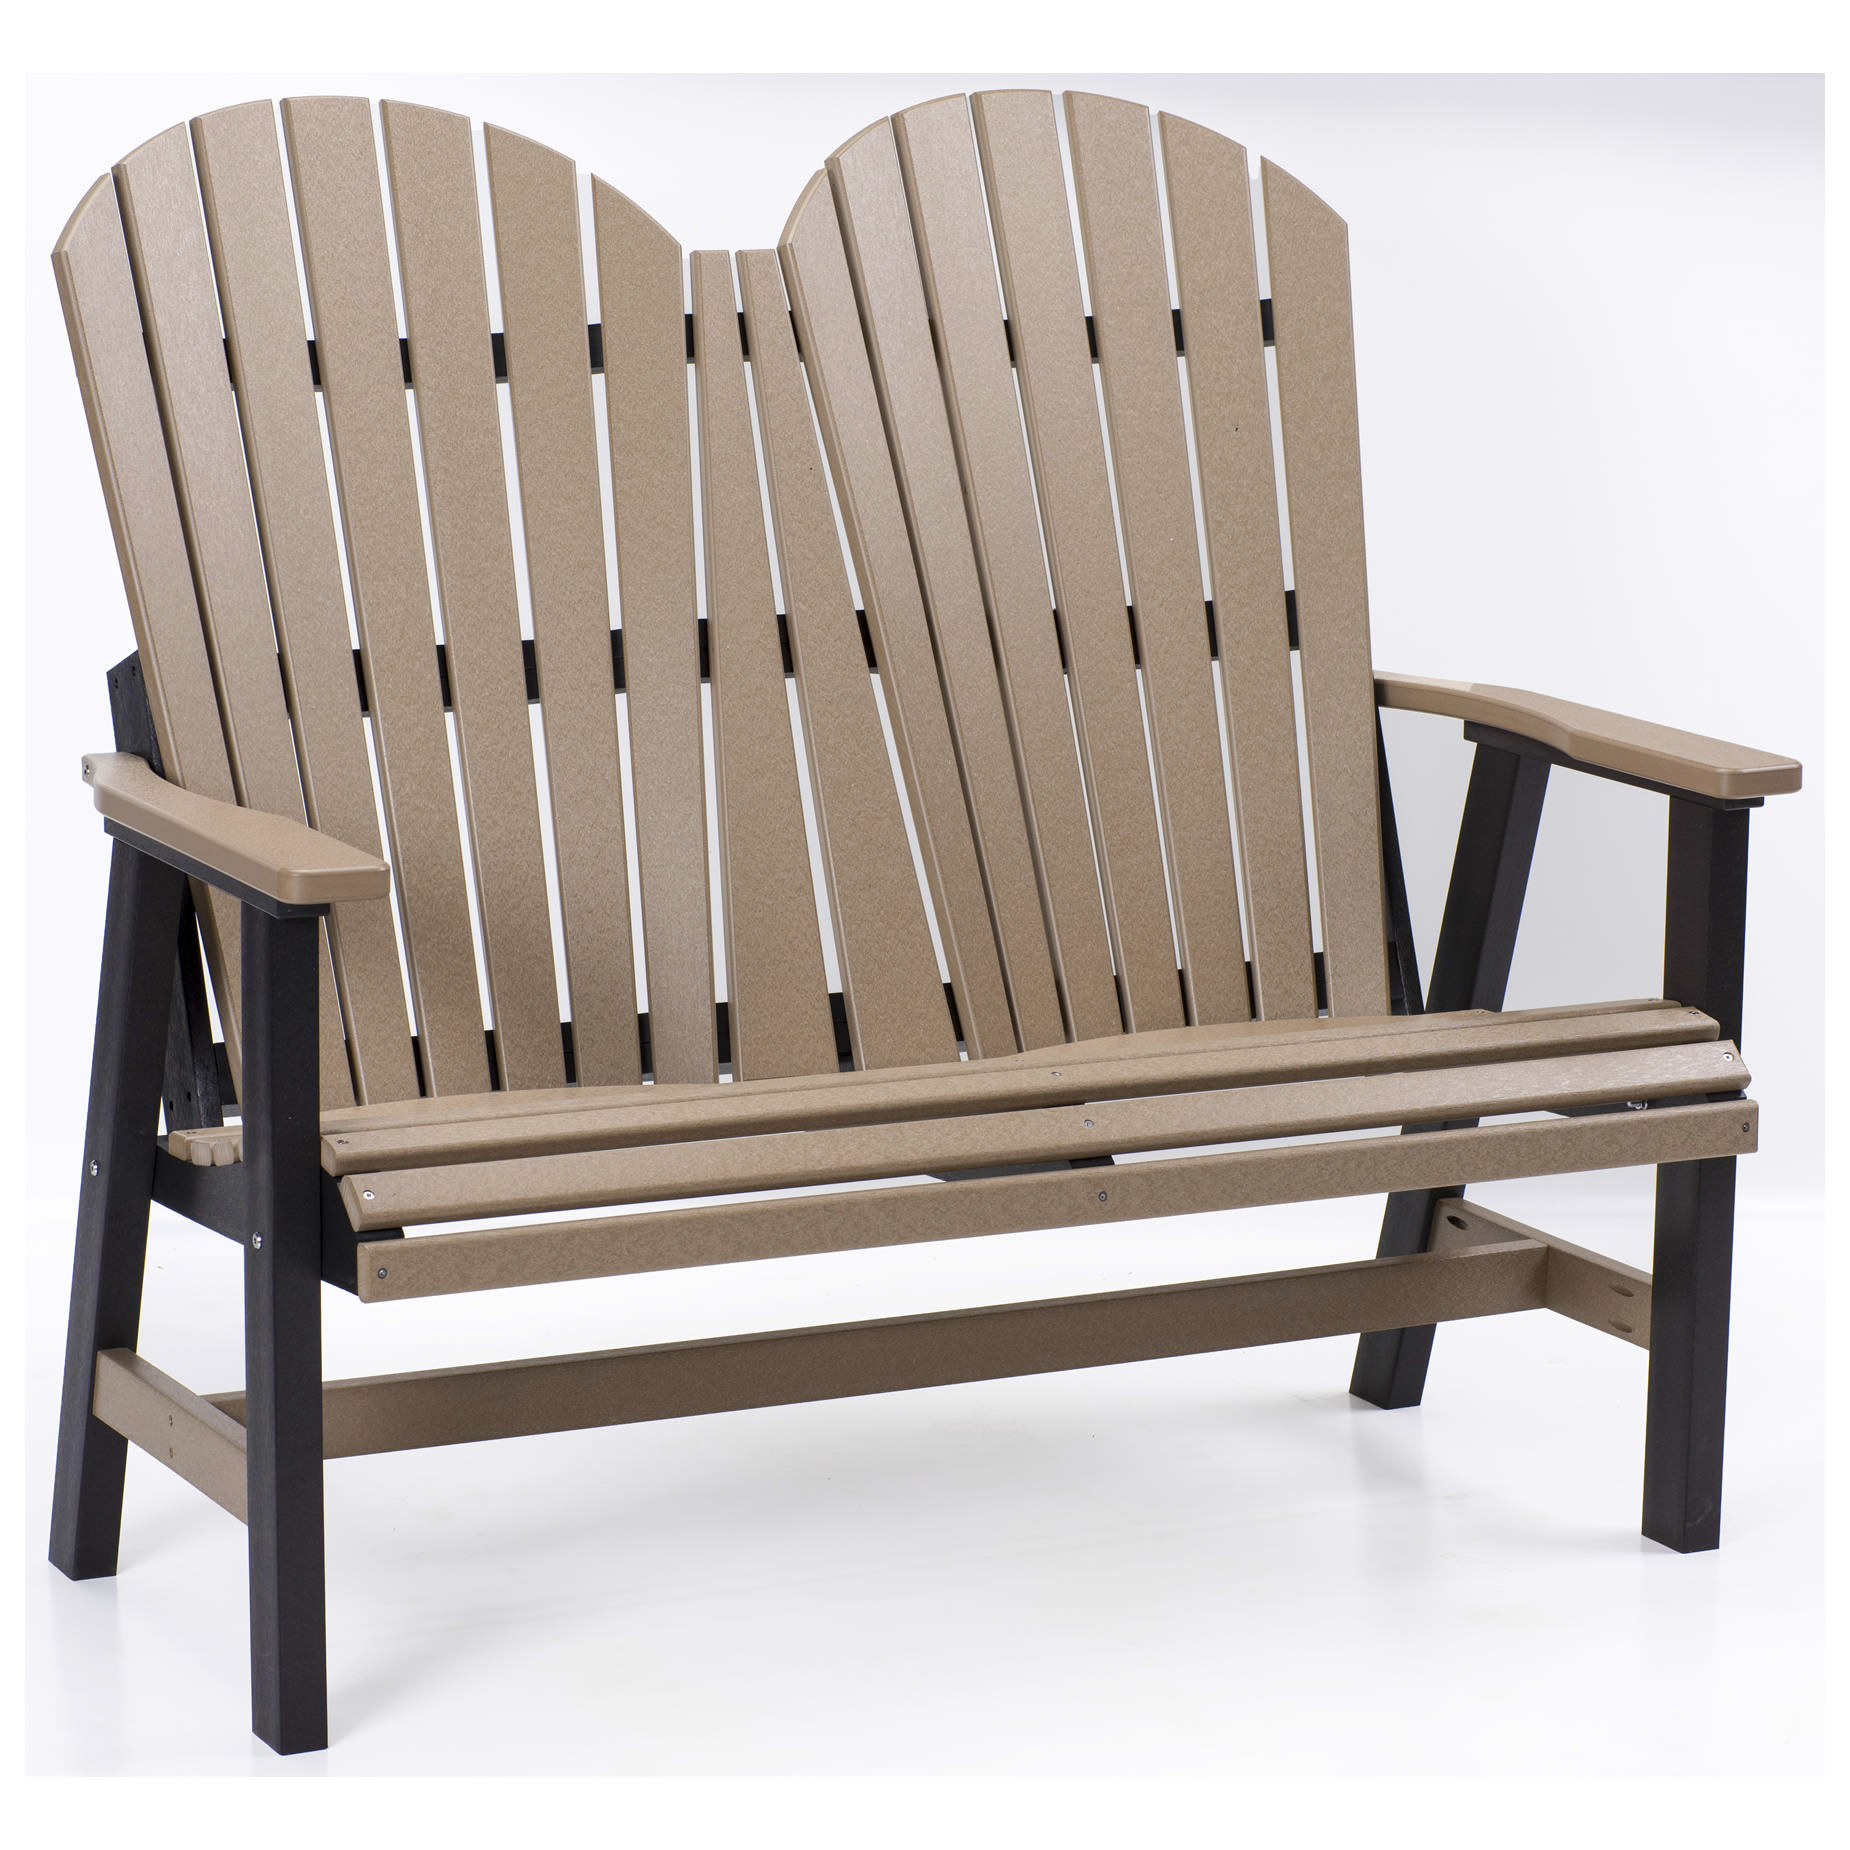 Berlin Gardens Comfo-Back Loveseat Bench